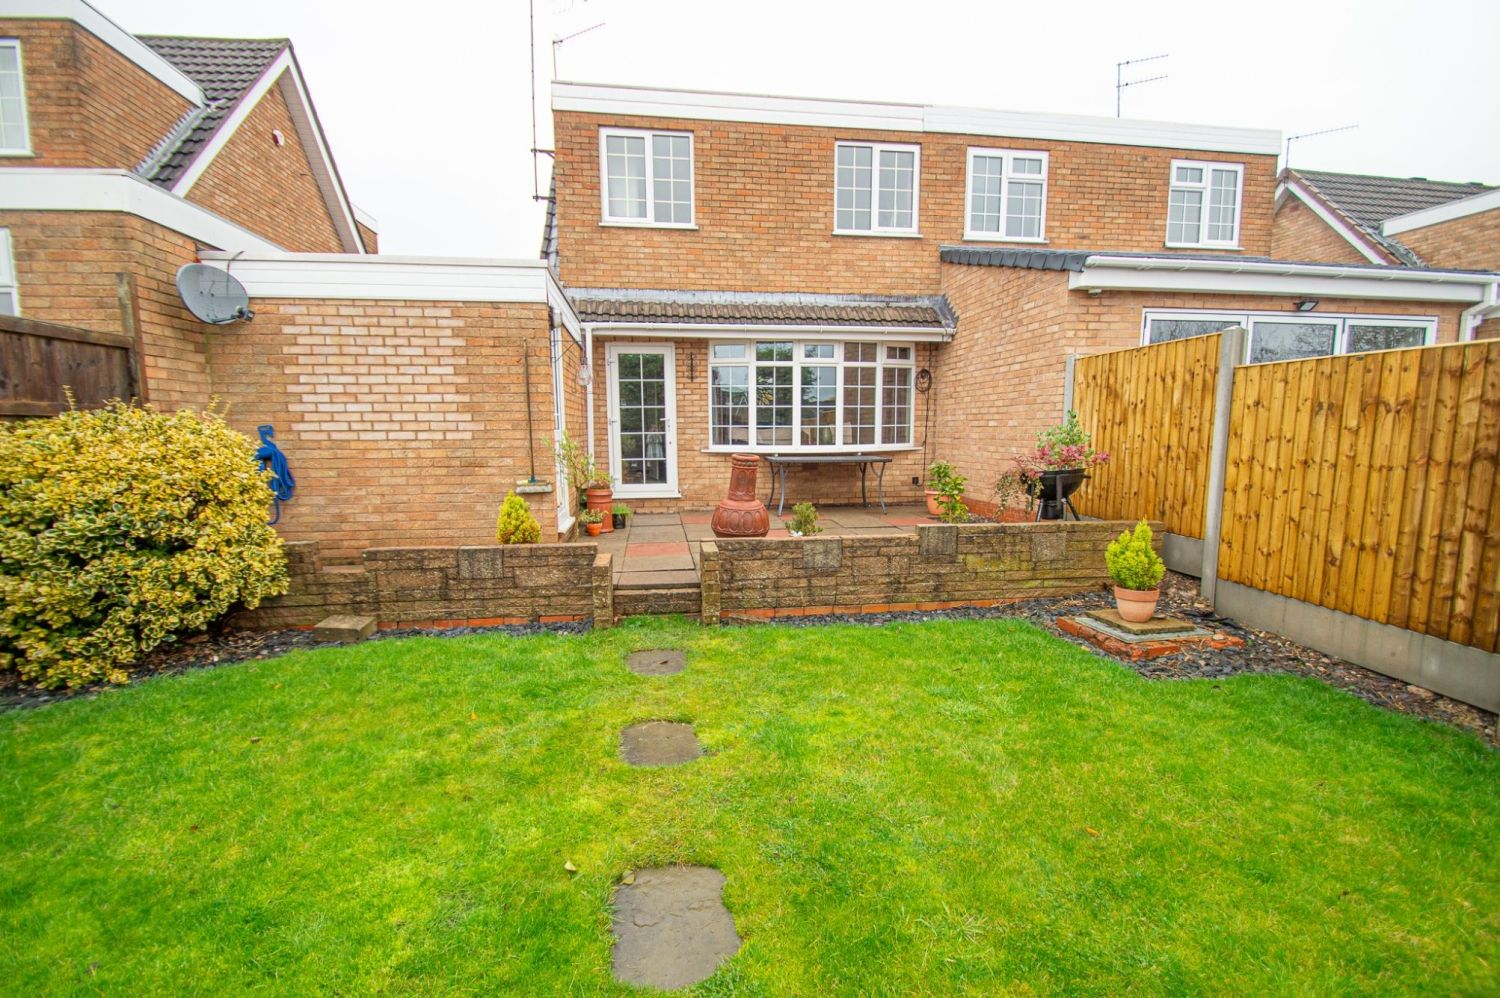 2 bed semi-detached for sale in Woburn Drive, Halesowen 16